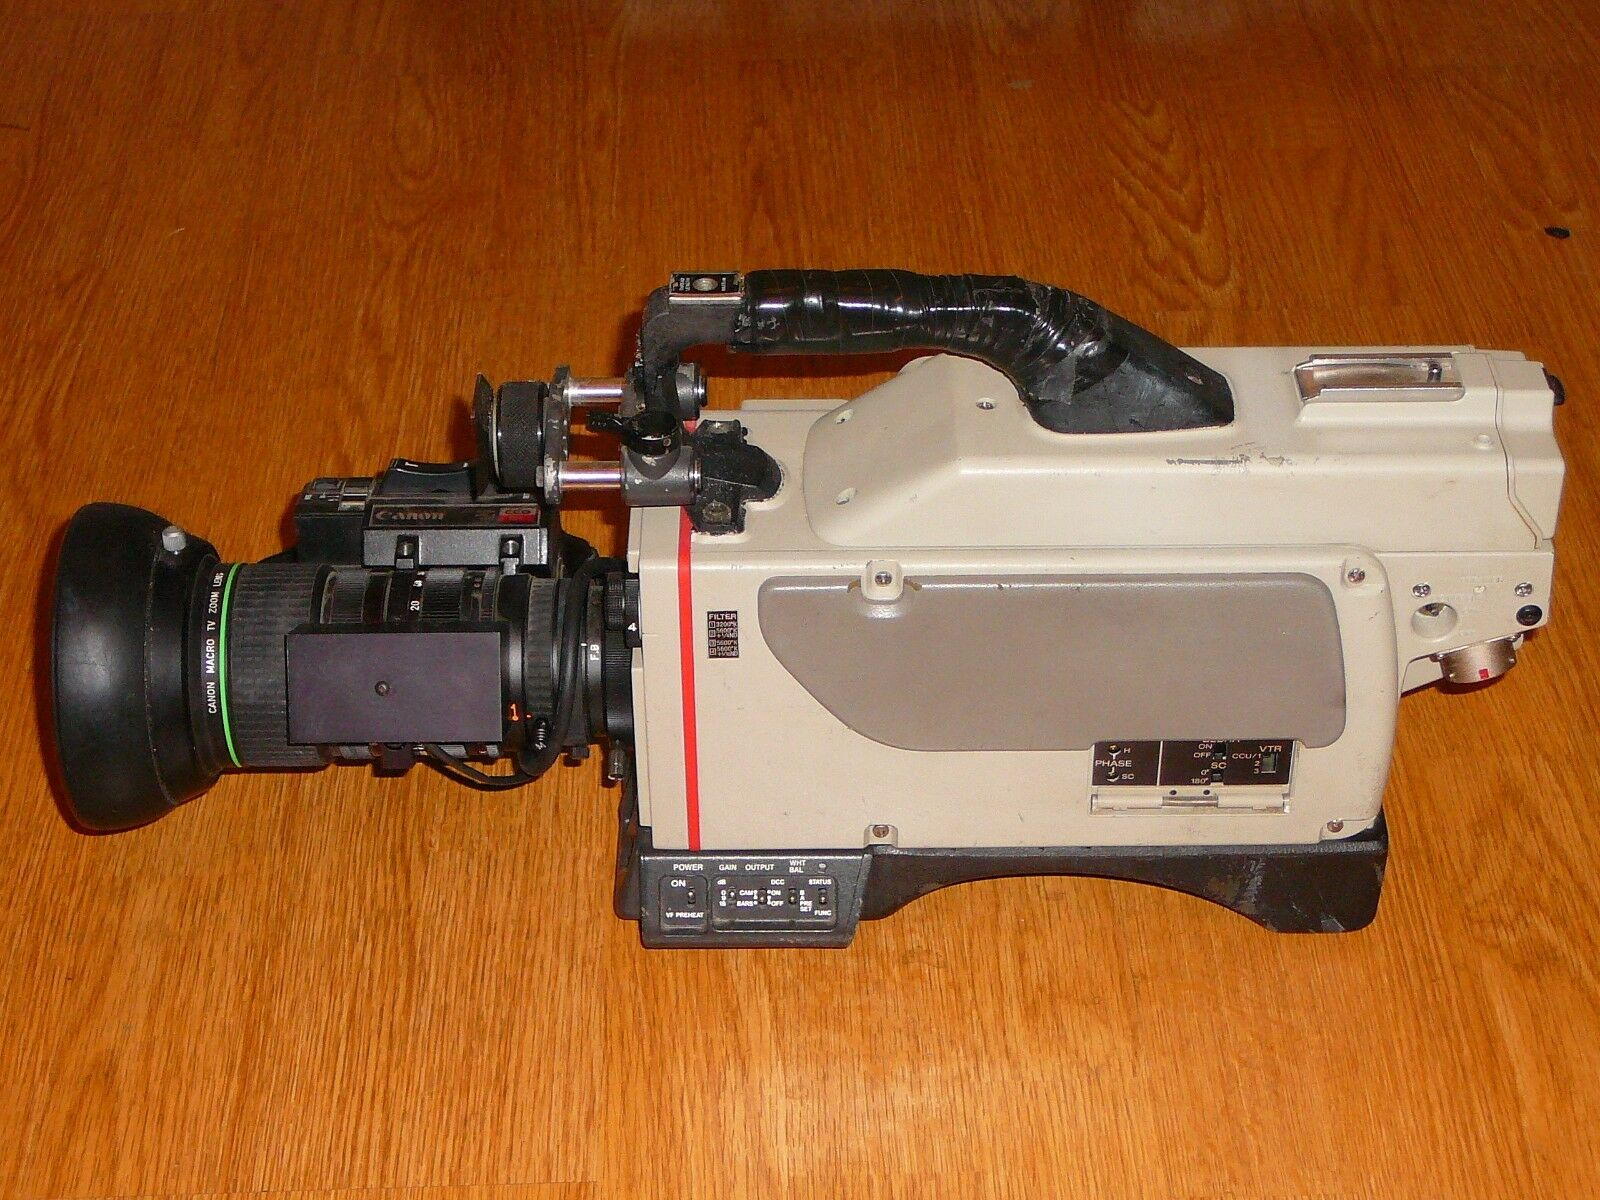 s l1600 - SONY DXC-M7 Professional Camera with Camera Control Unit Deck  Local Pickup Only